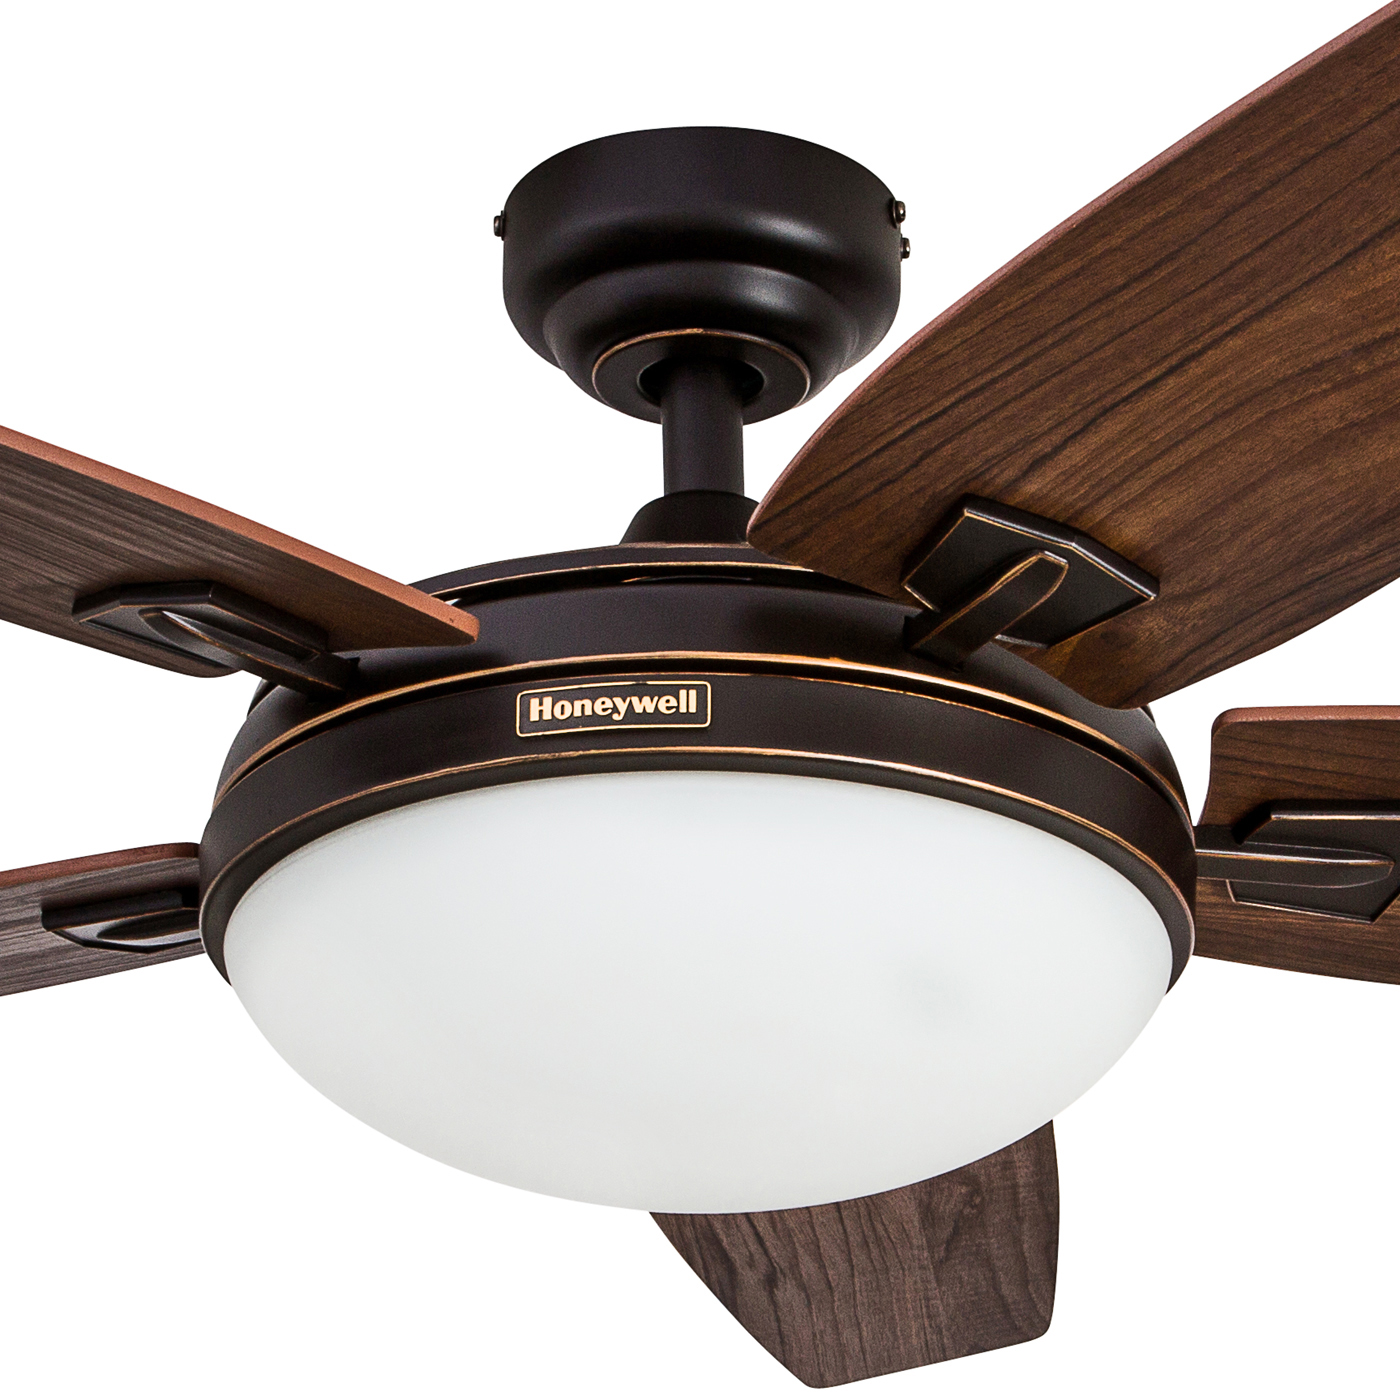 Contemporary And Modern Honeywell Ceiling Fan Designed For The Home In Mind 48 Carmel Brushed Nickel With Integrated